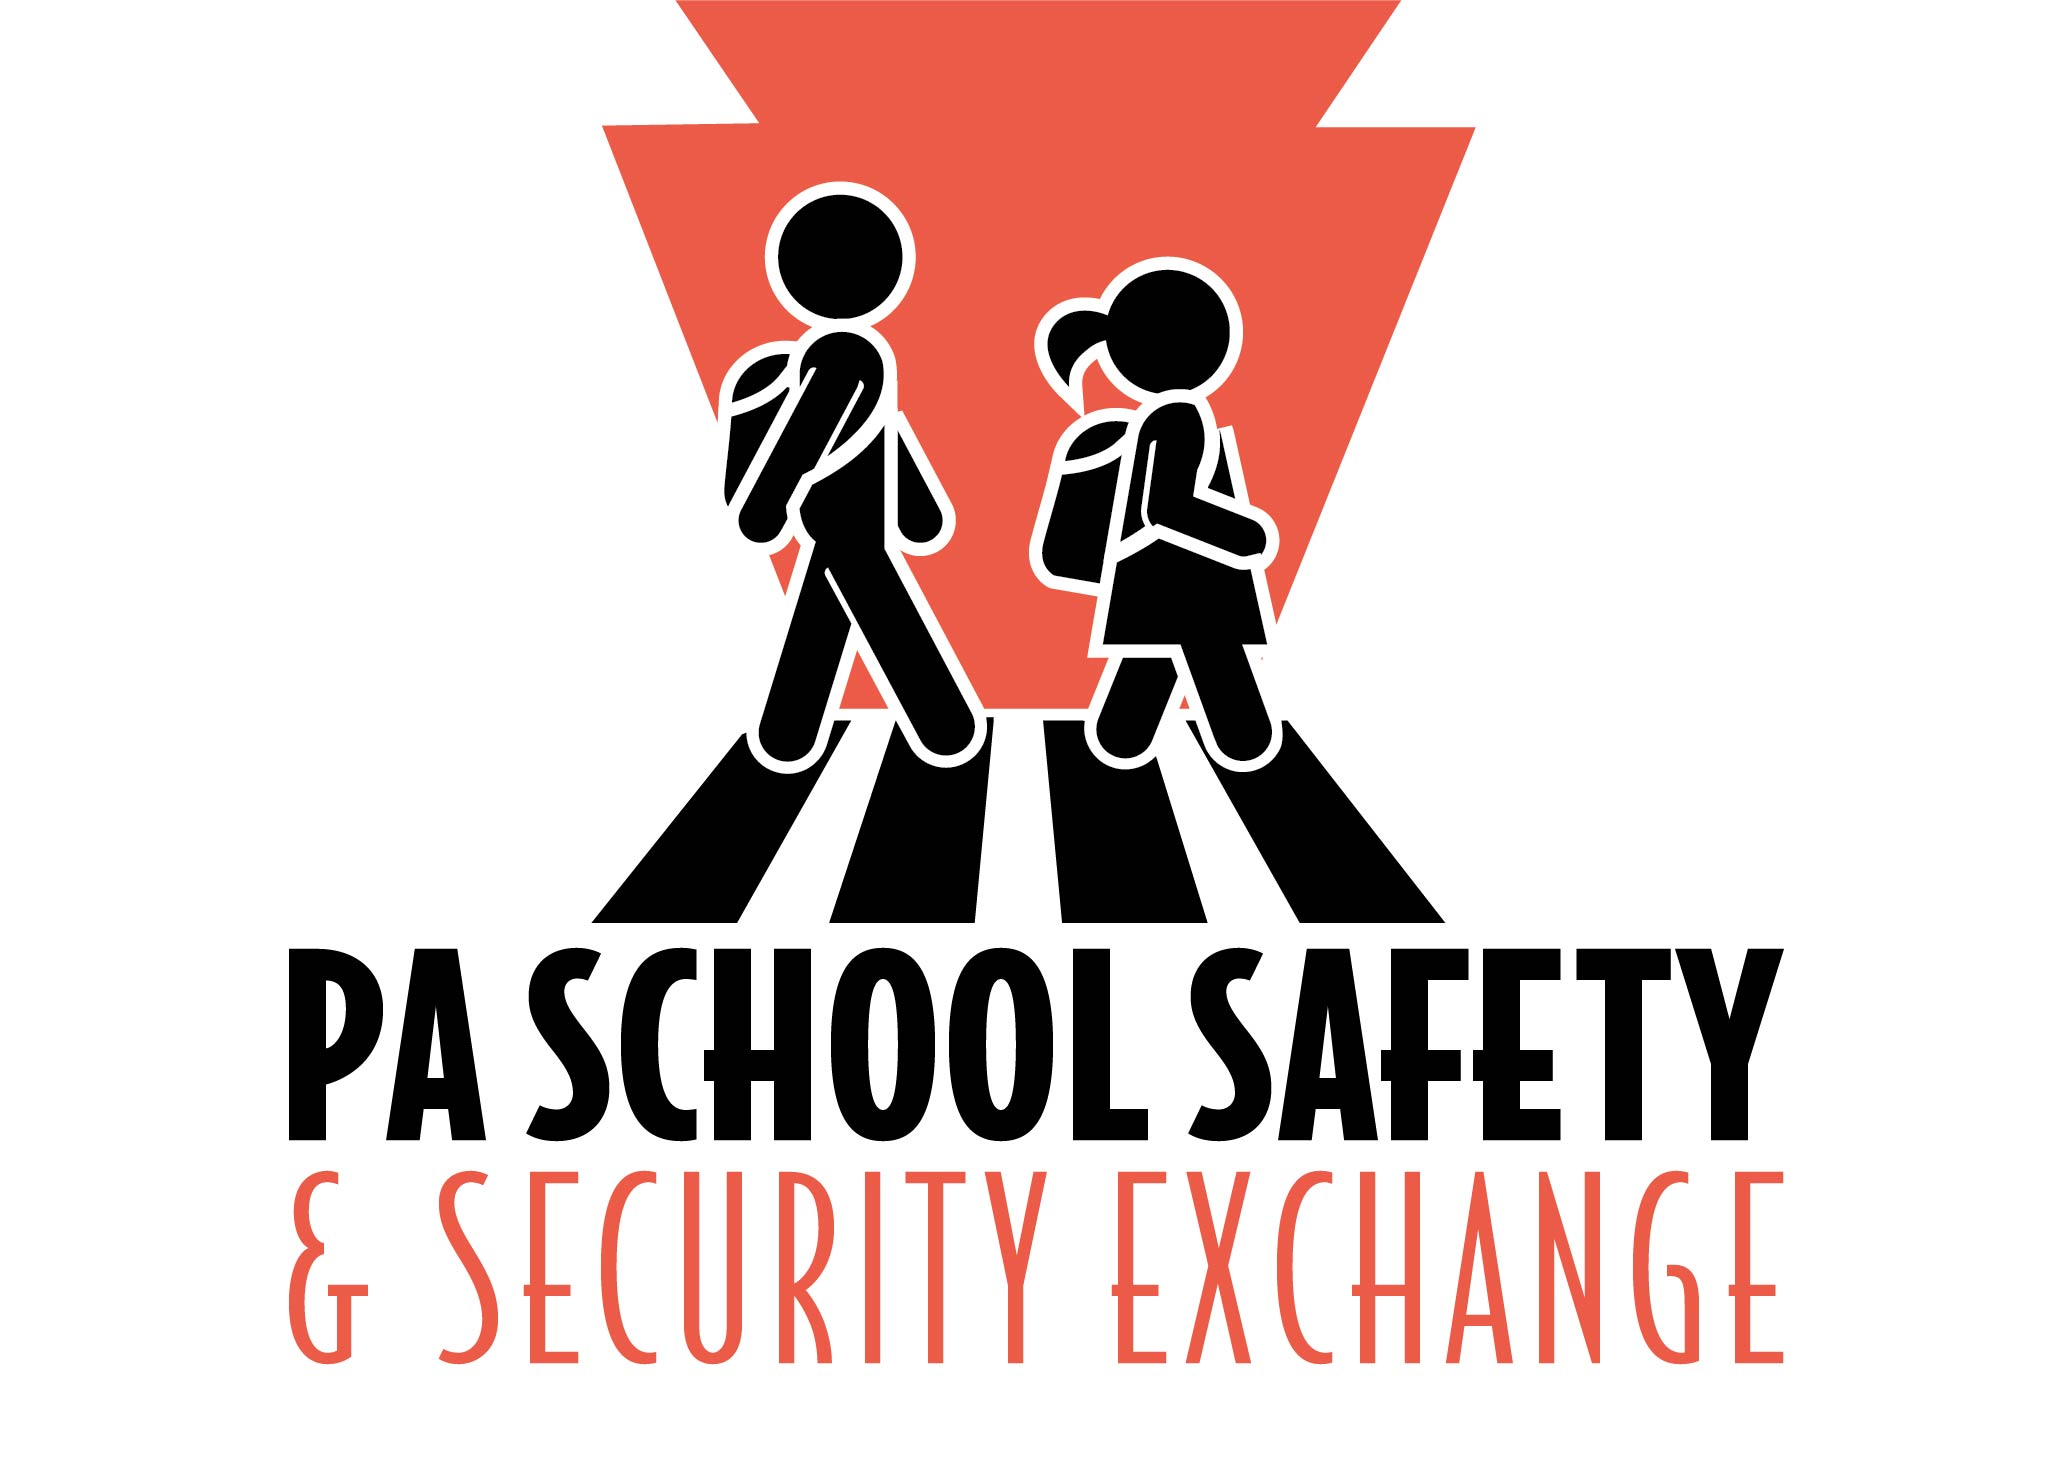 School Safety Logo Images